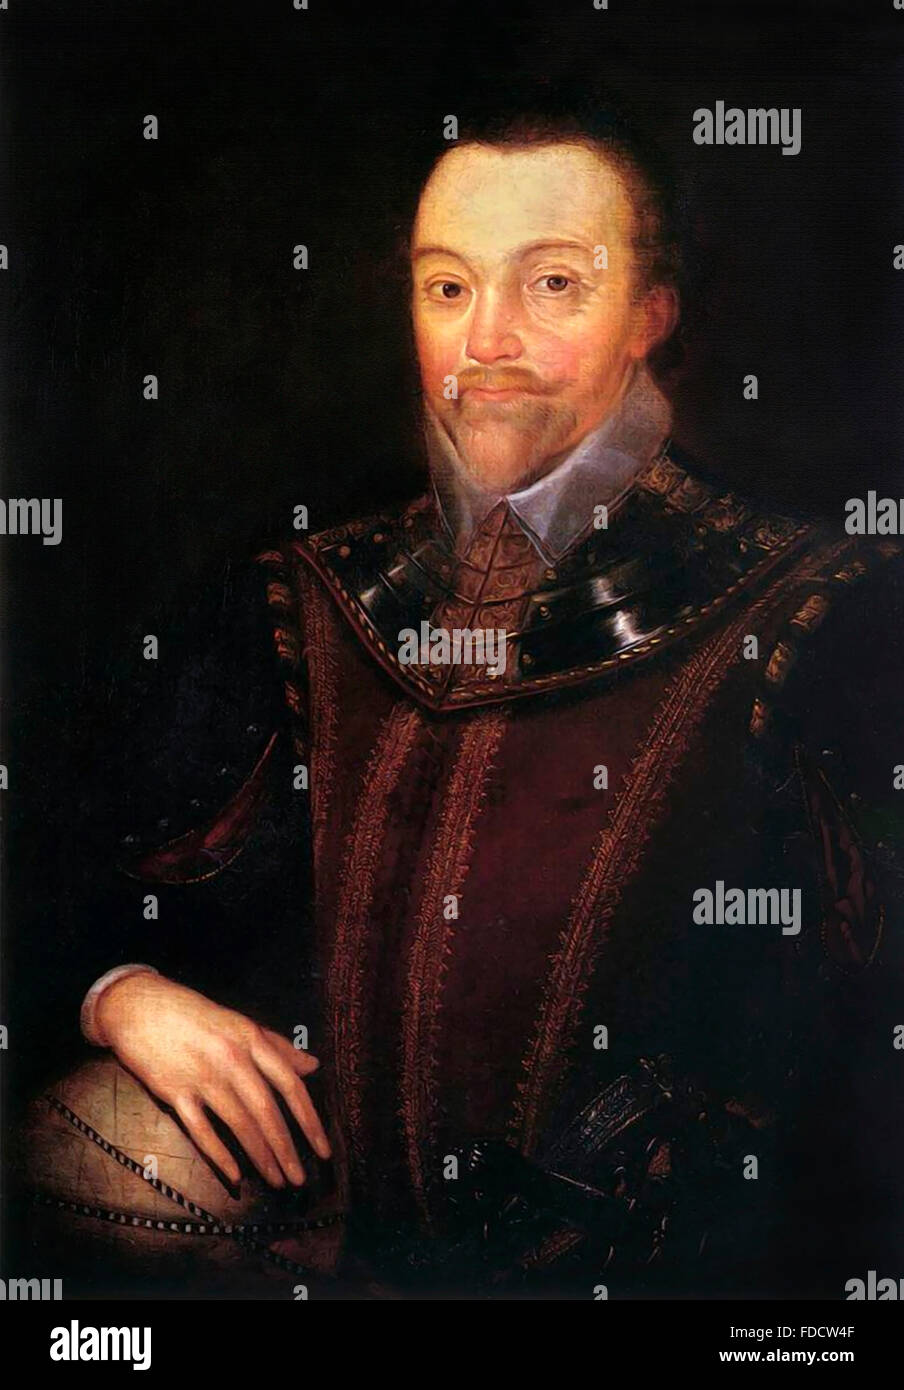 Sir Francis Drake, portrait by Marcus Gheeraerts der Jüngere, painted some time after 1590 - Stock Image